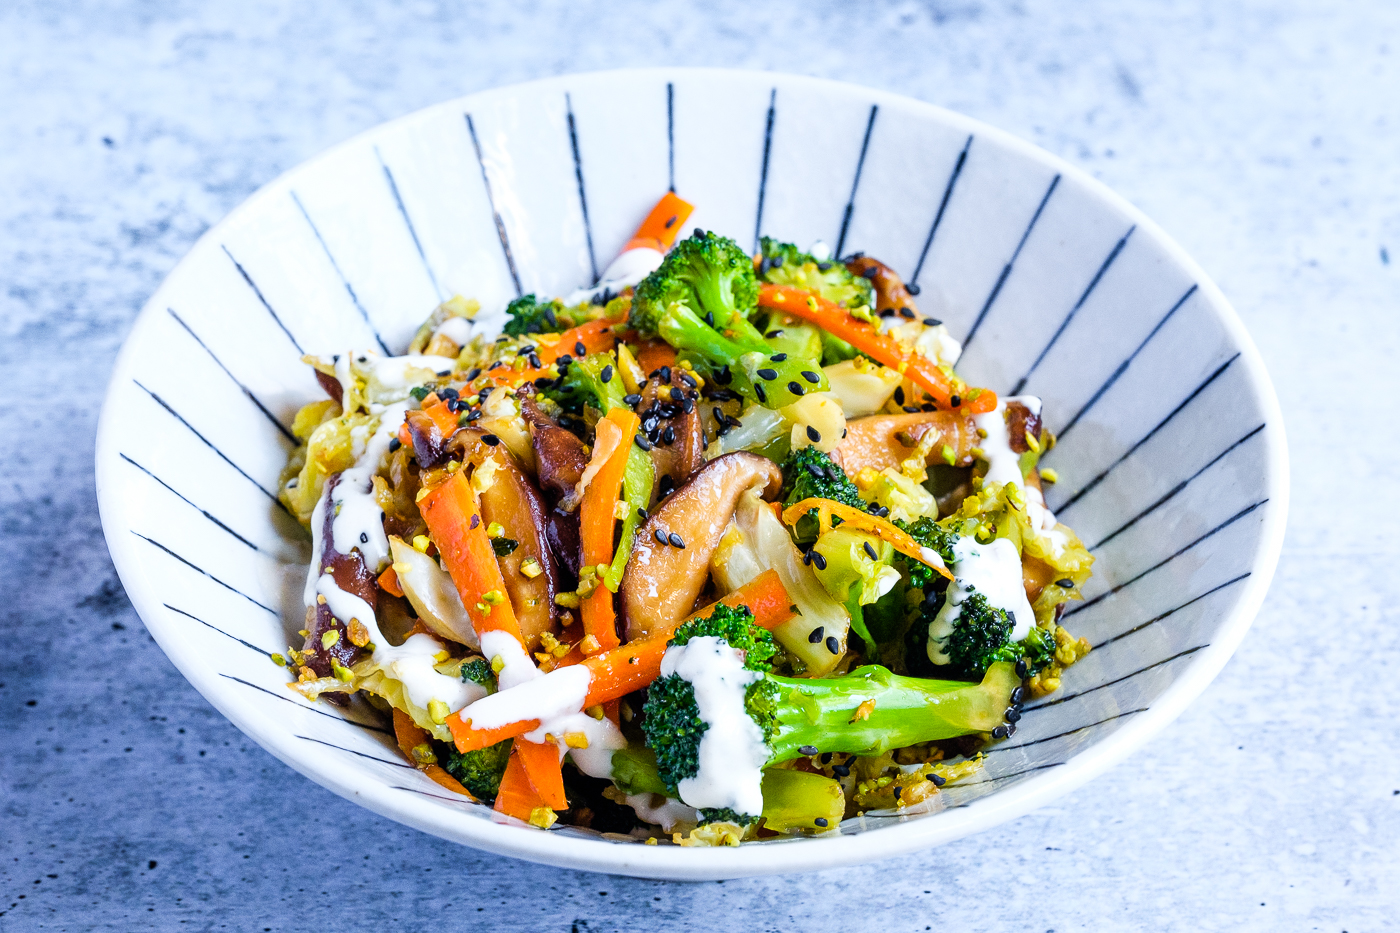 Crunchy Stir-Fry With Tahini Sauce served in a bowl